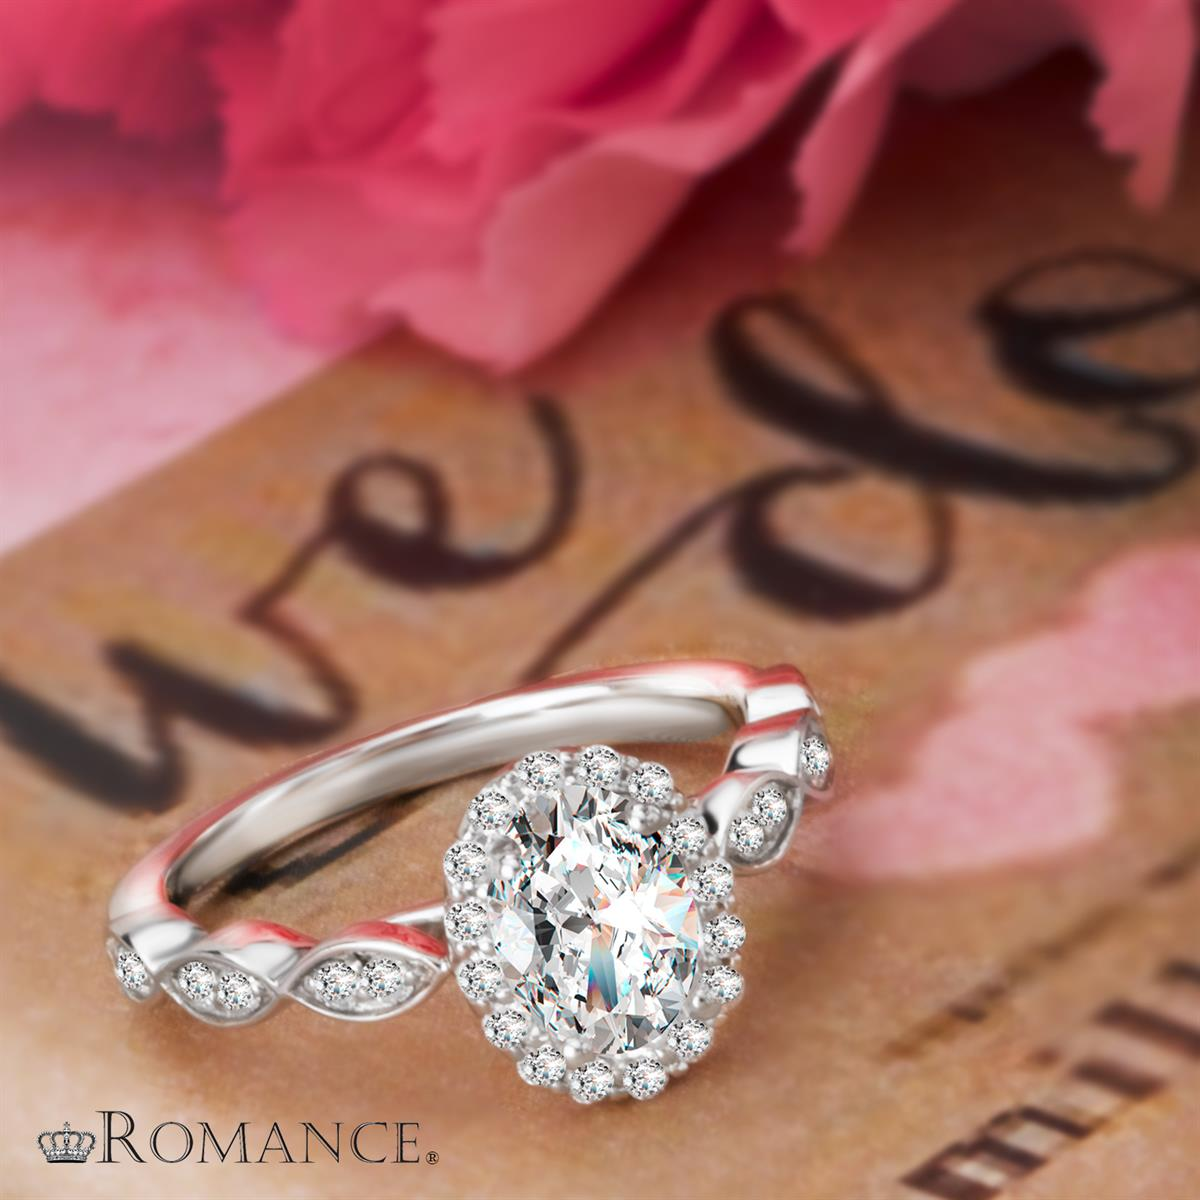 Bridal and Engagement Rings in karat gold and diamonds